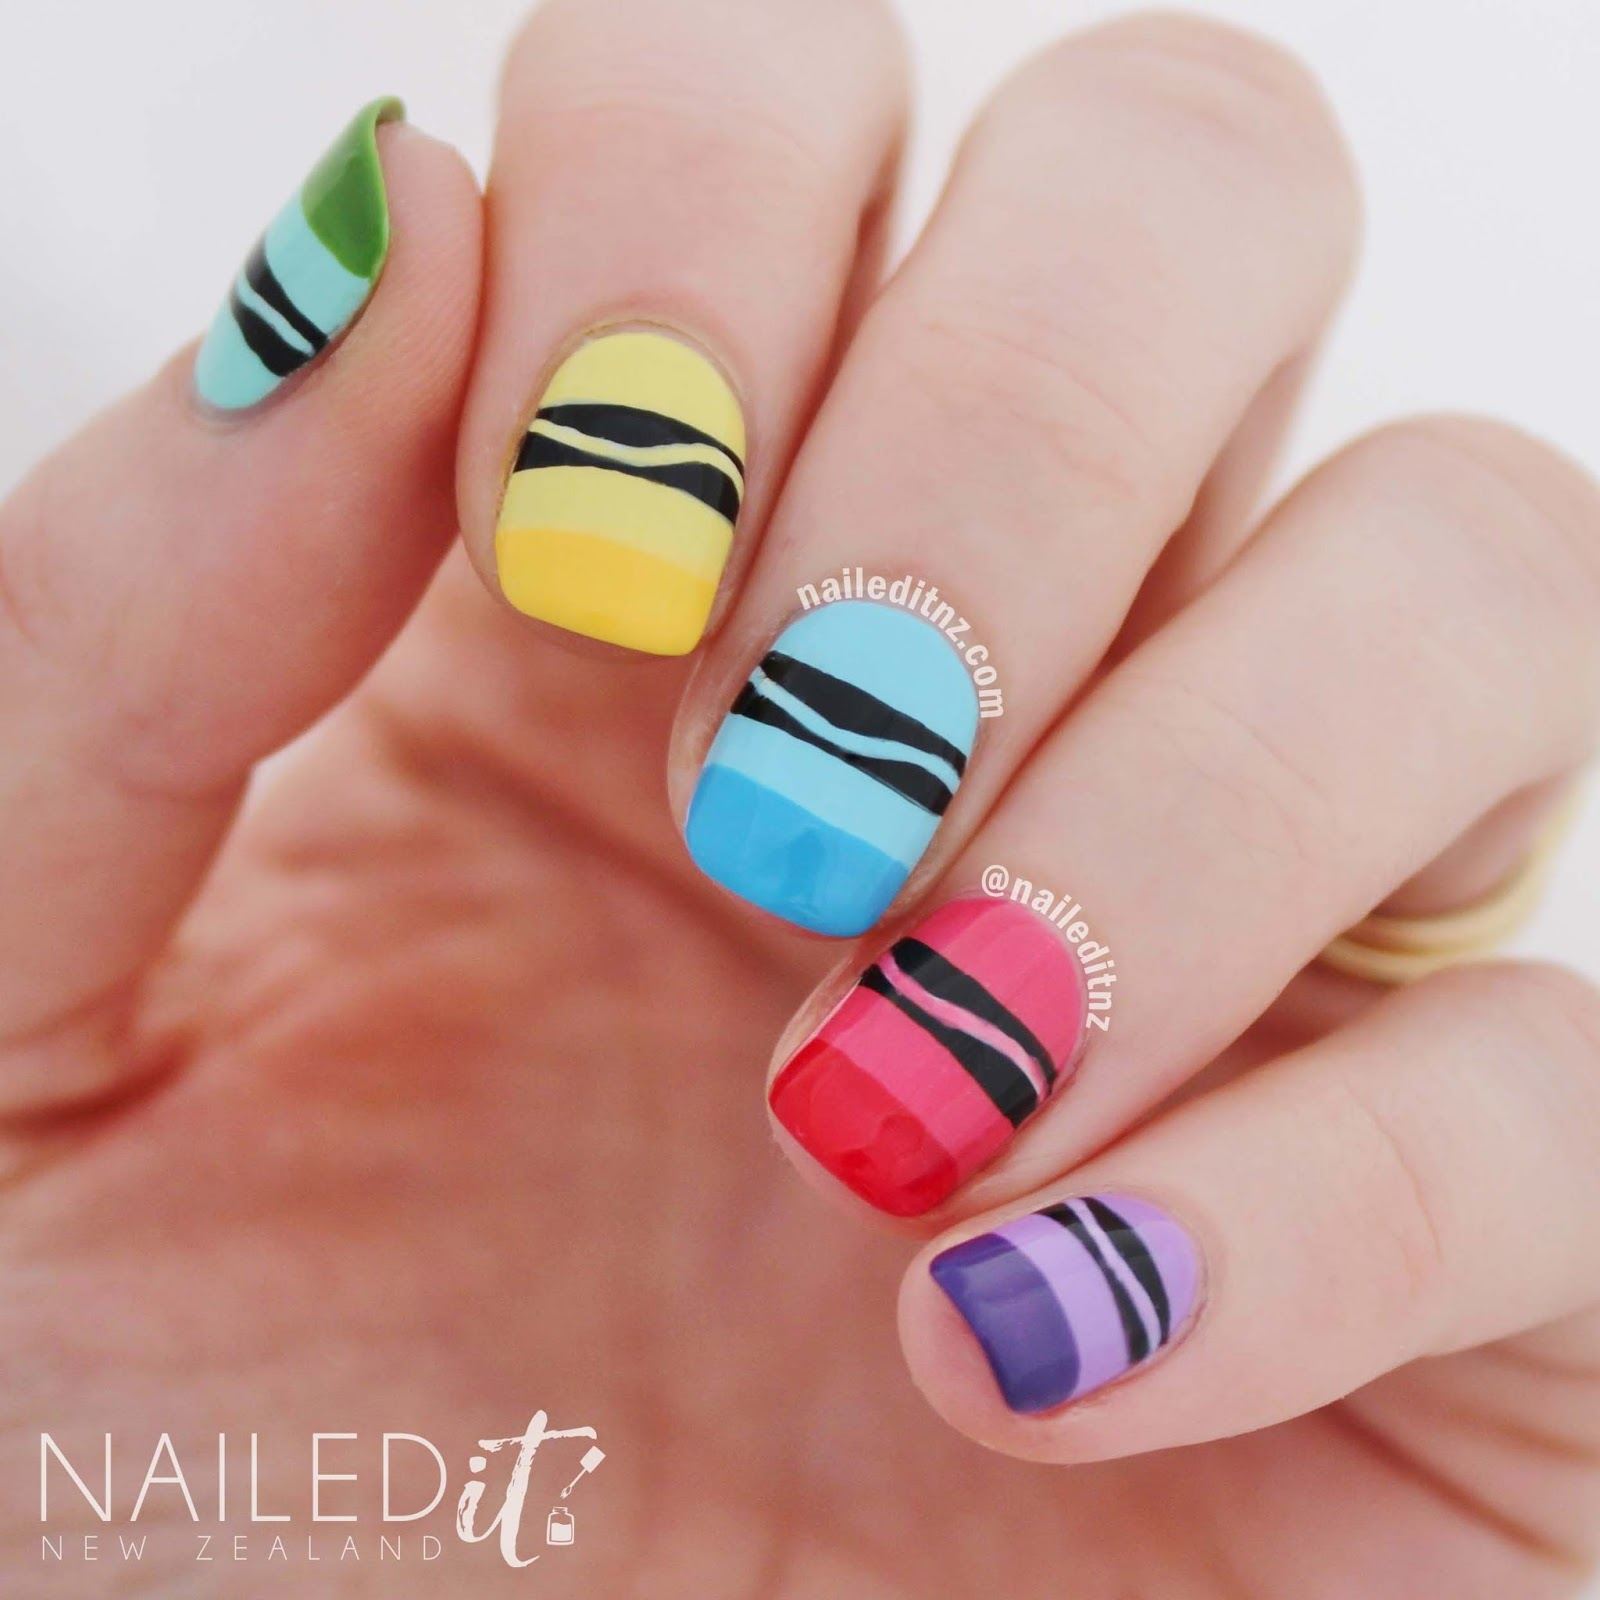 Crayon Nail Art | Inspired by Crayola